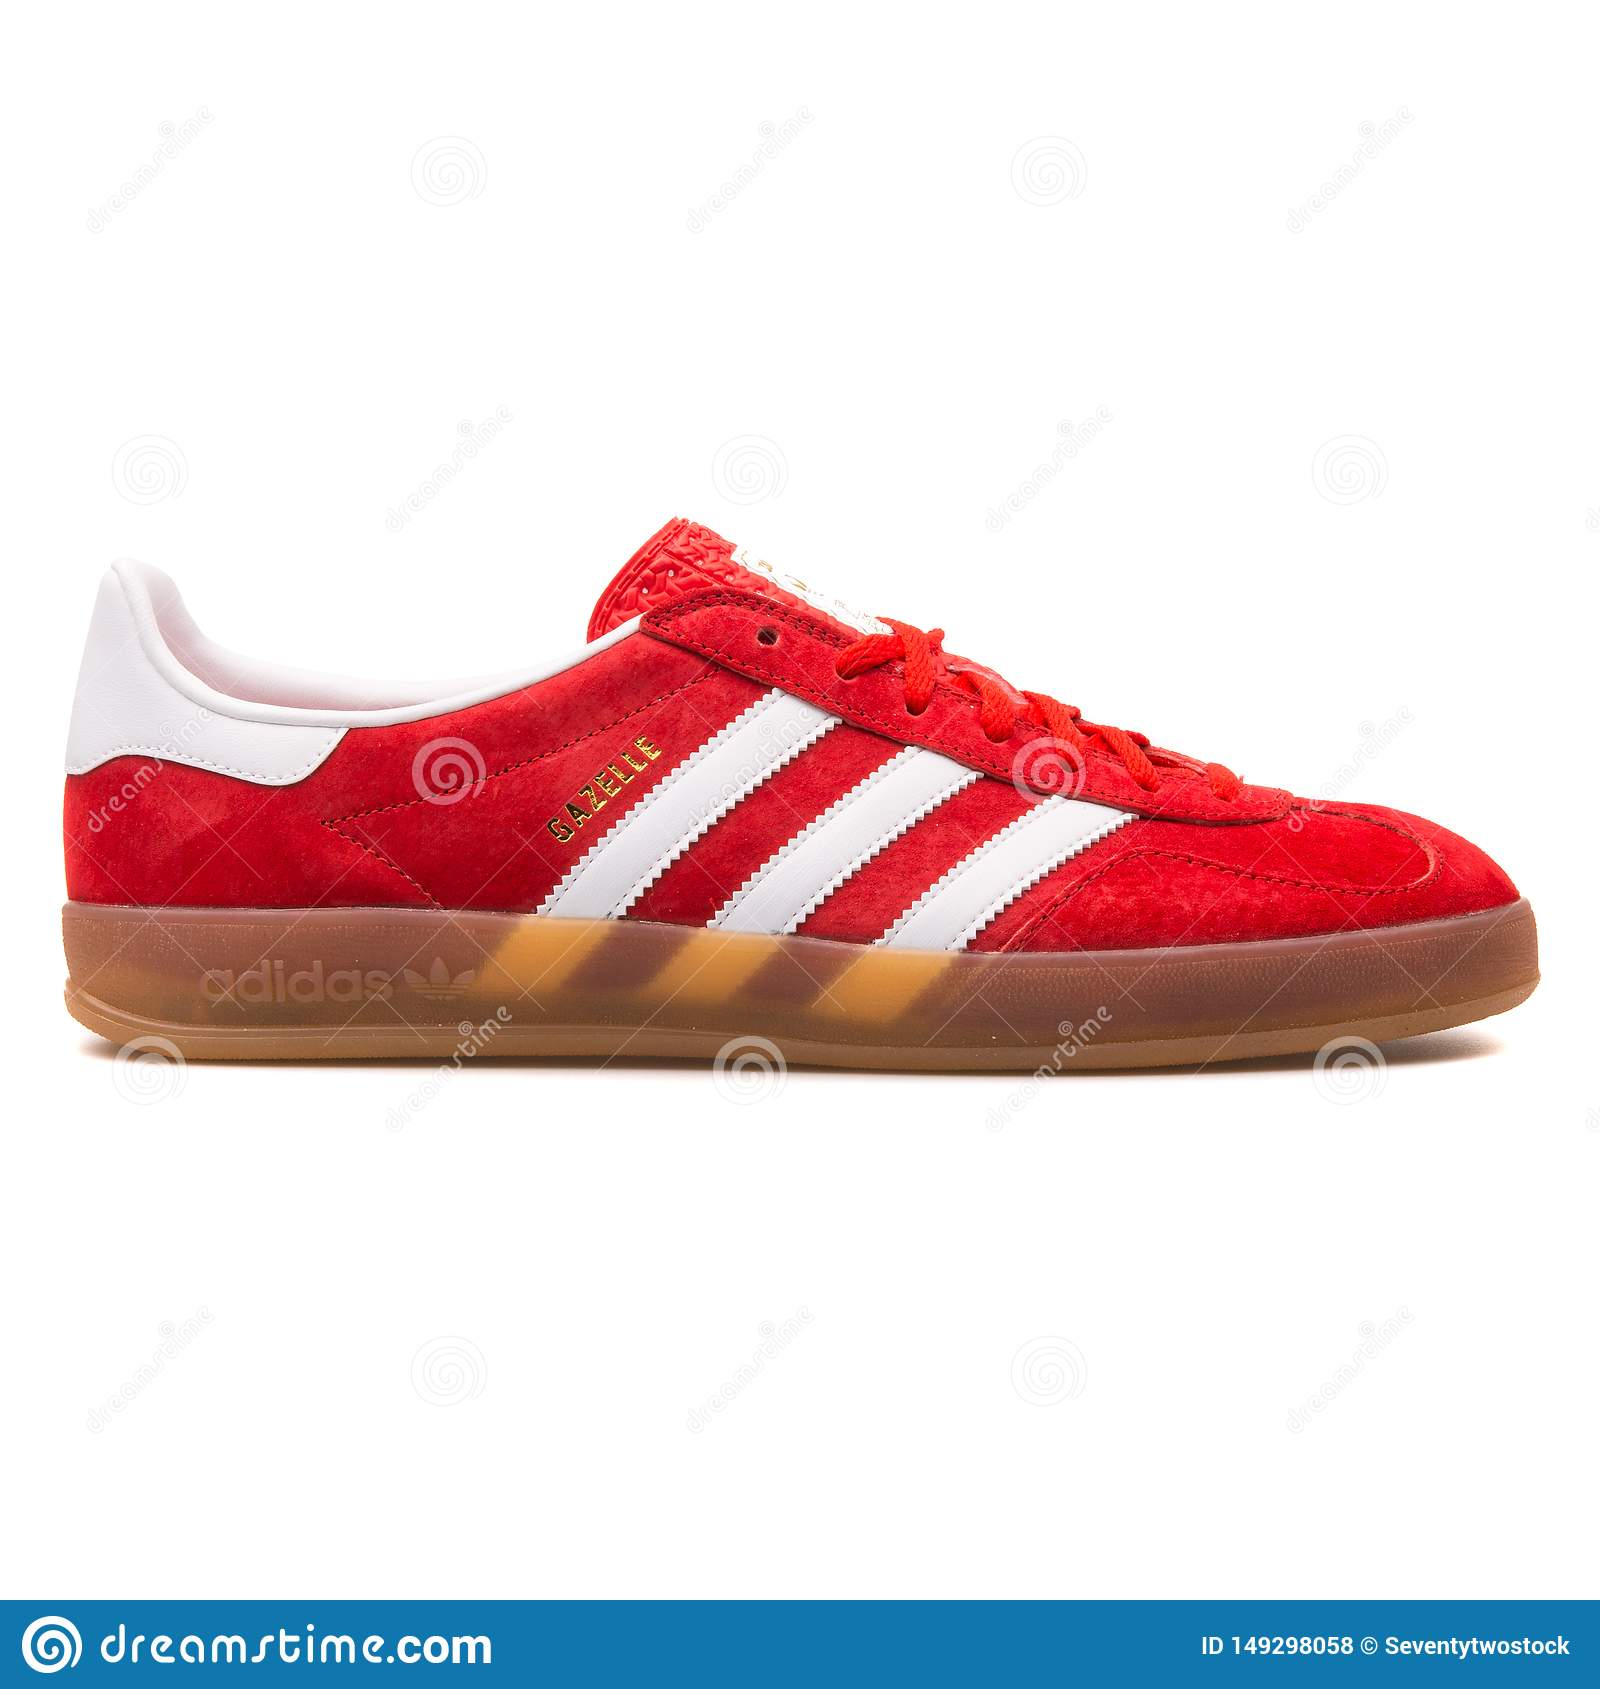 Adidas Gazelle Indoor Red And White Sneaker Editorial Stock Photo ...